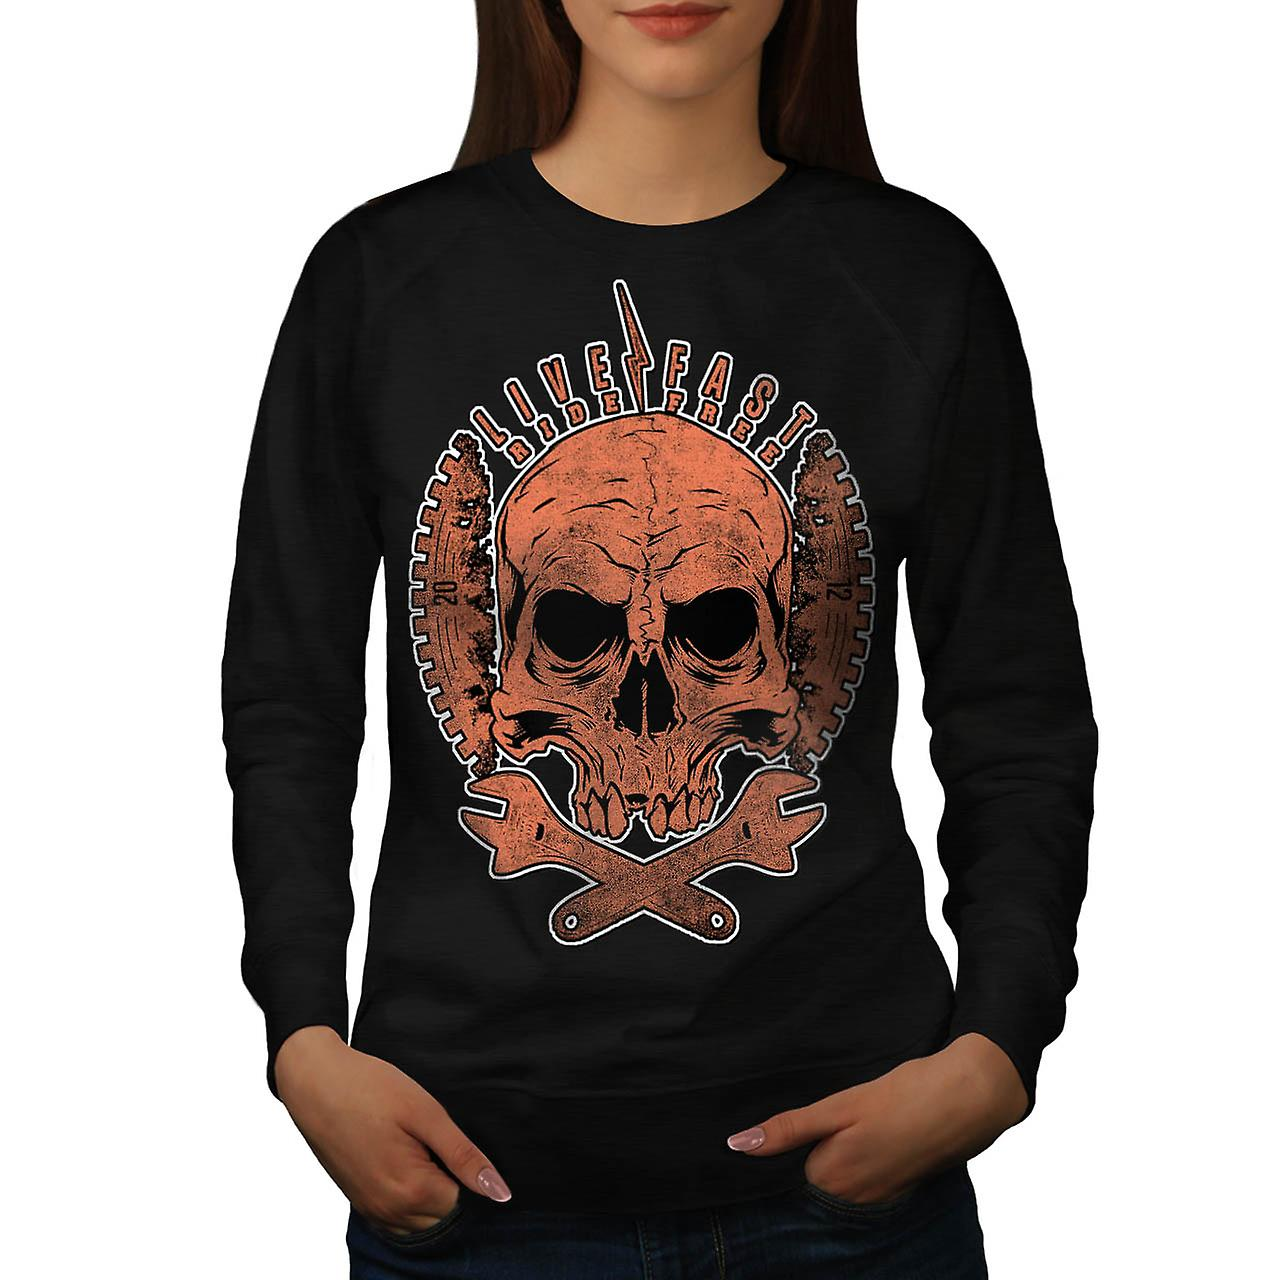 Live Fast Ride Free Biker Skull Women Black Sweatshirt | Wellcoda